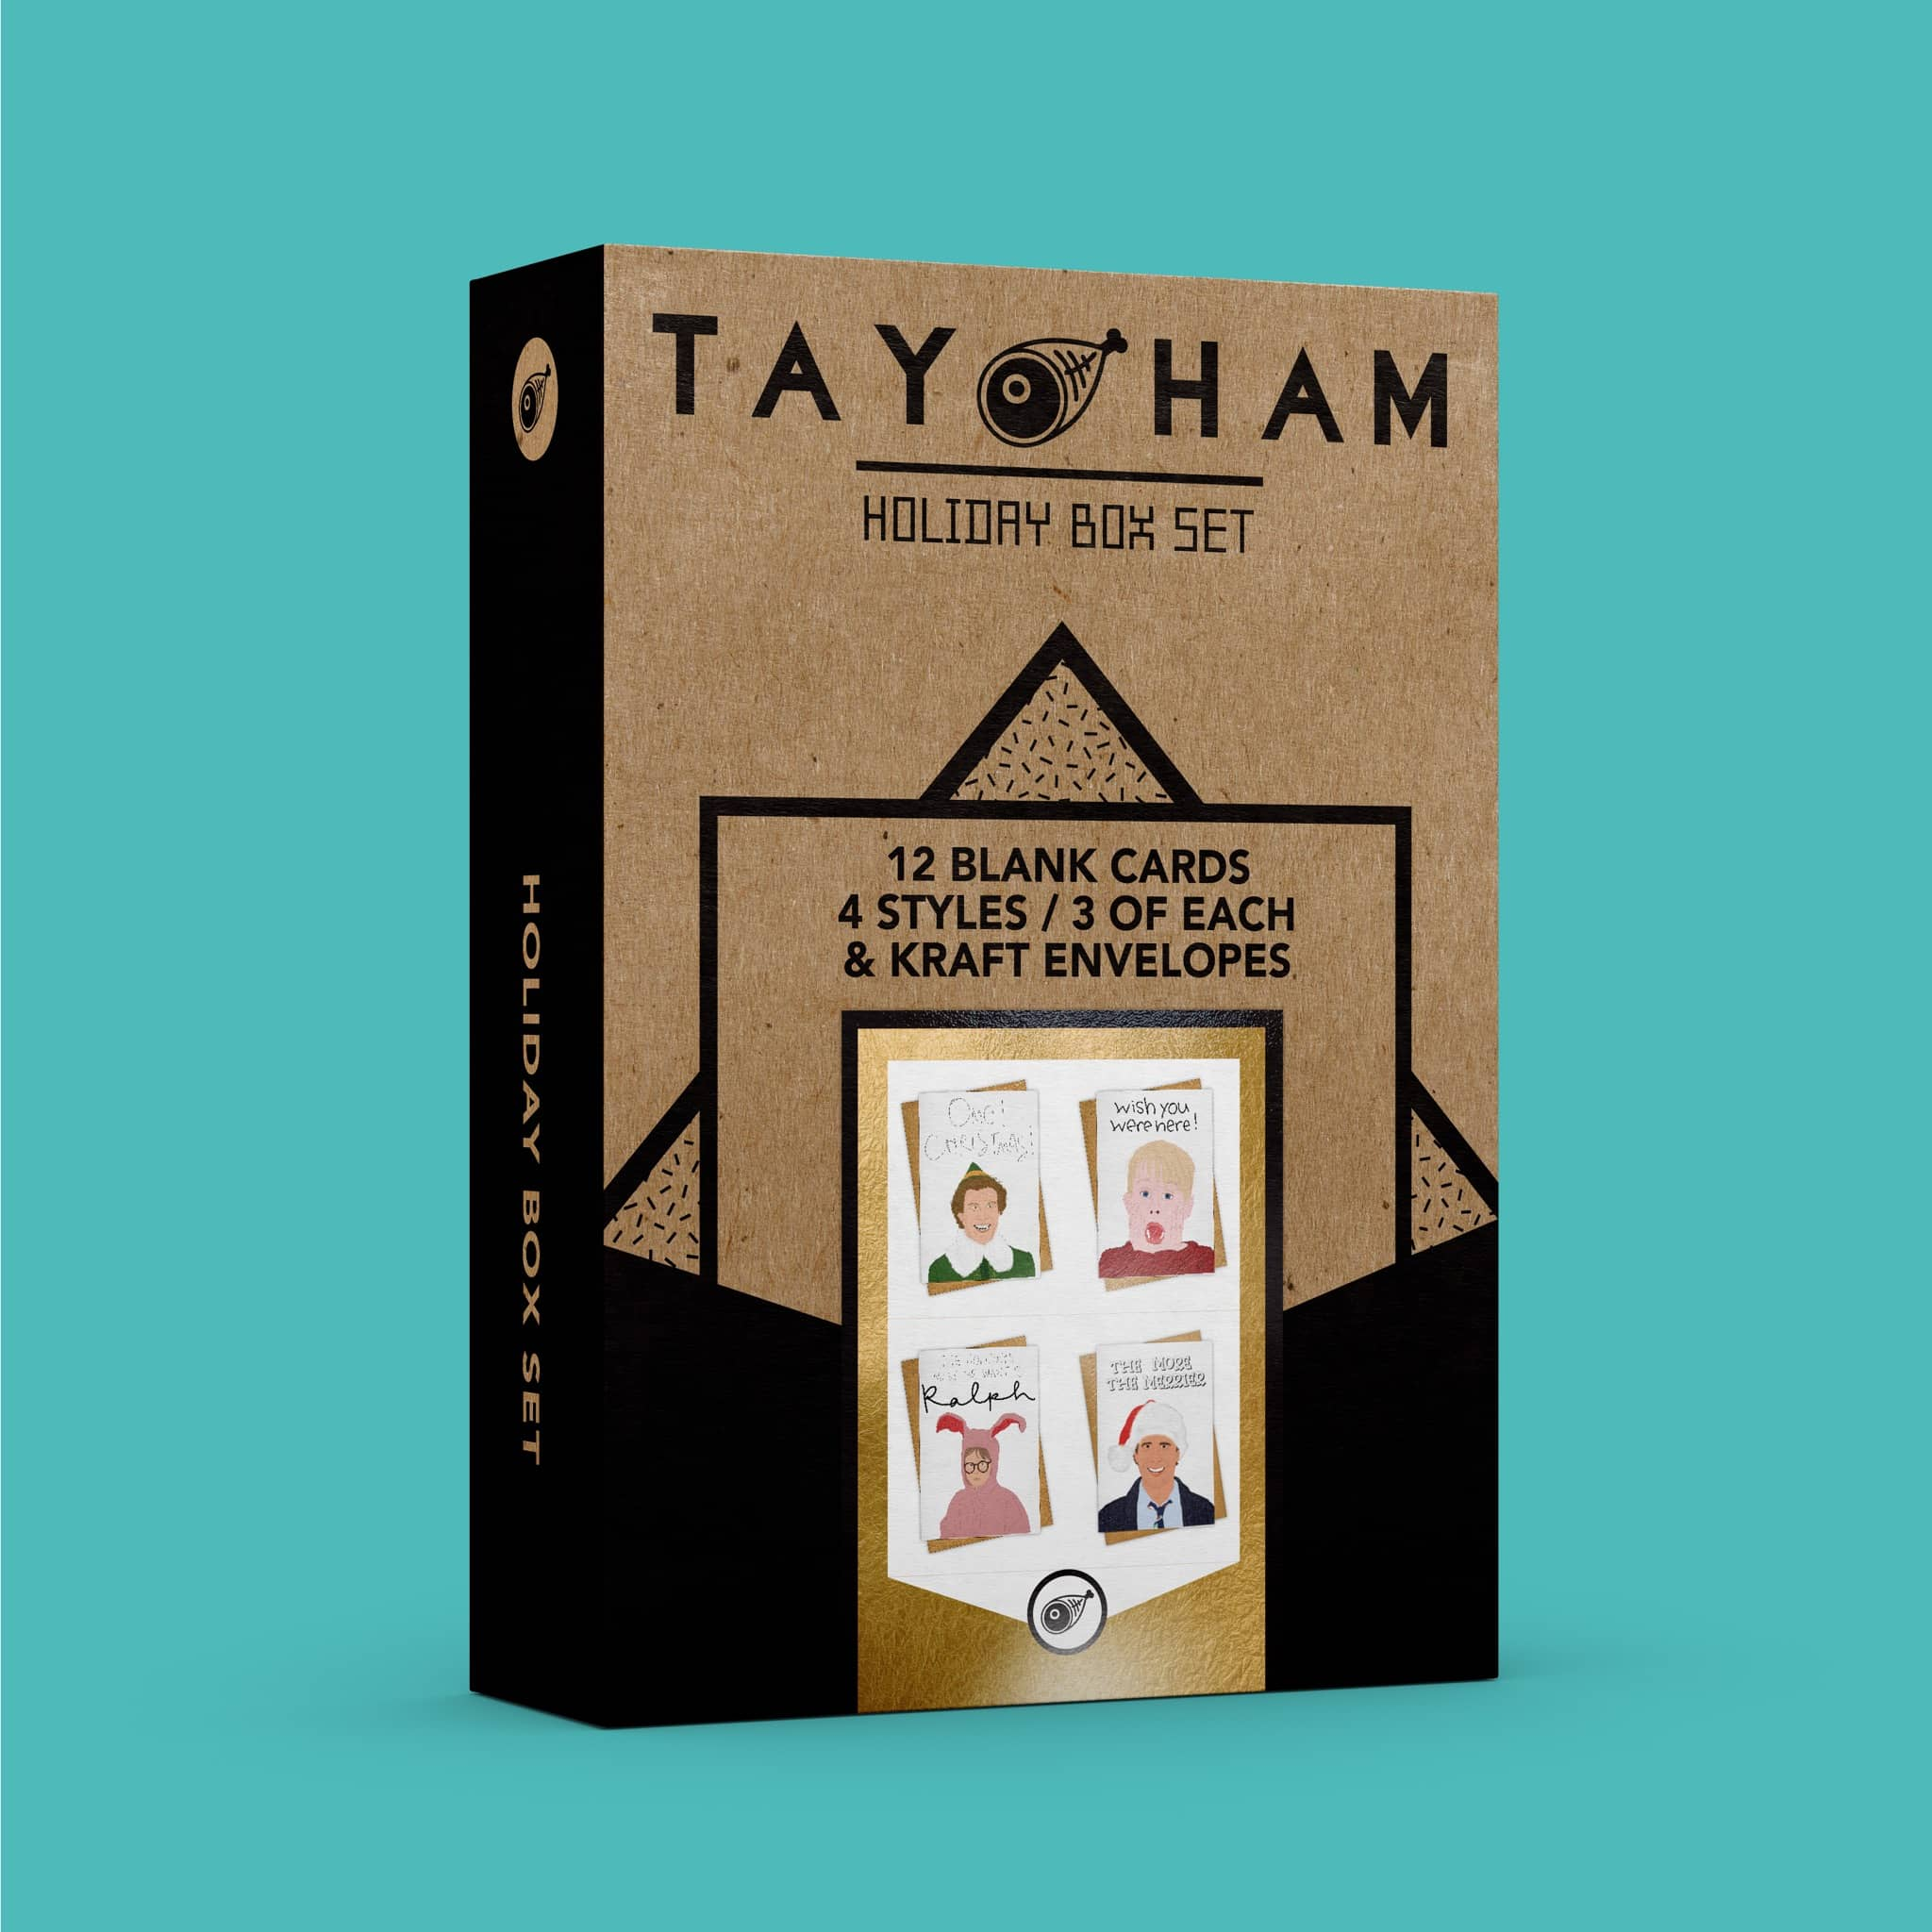 Tayham Box - Packaging Design by Brand Engine